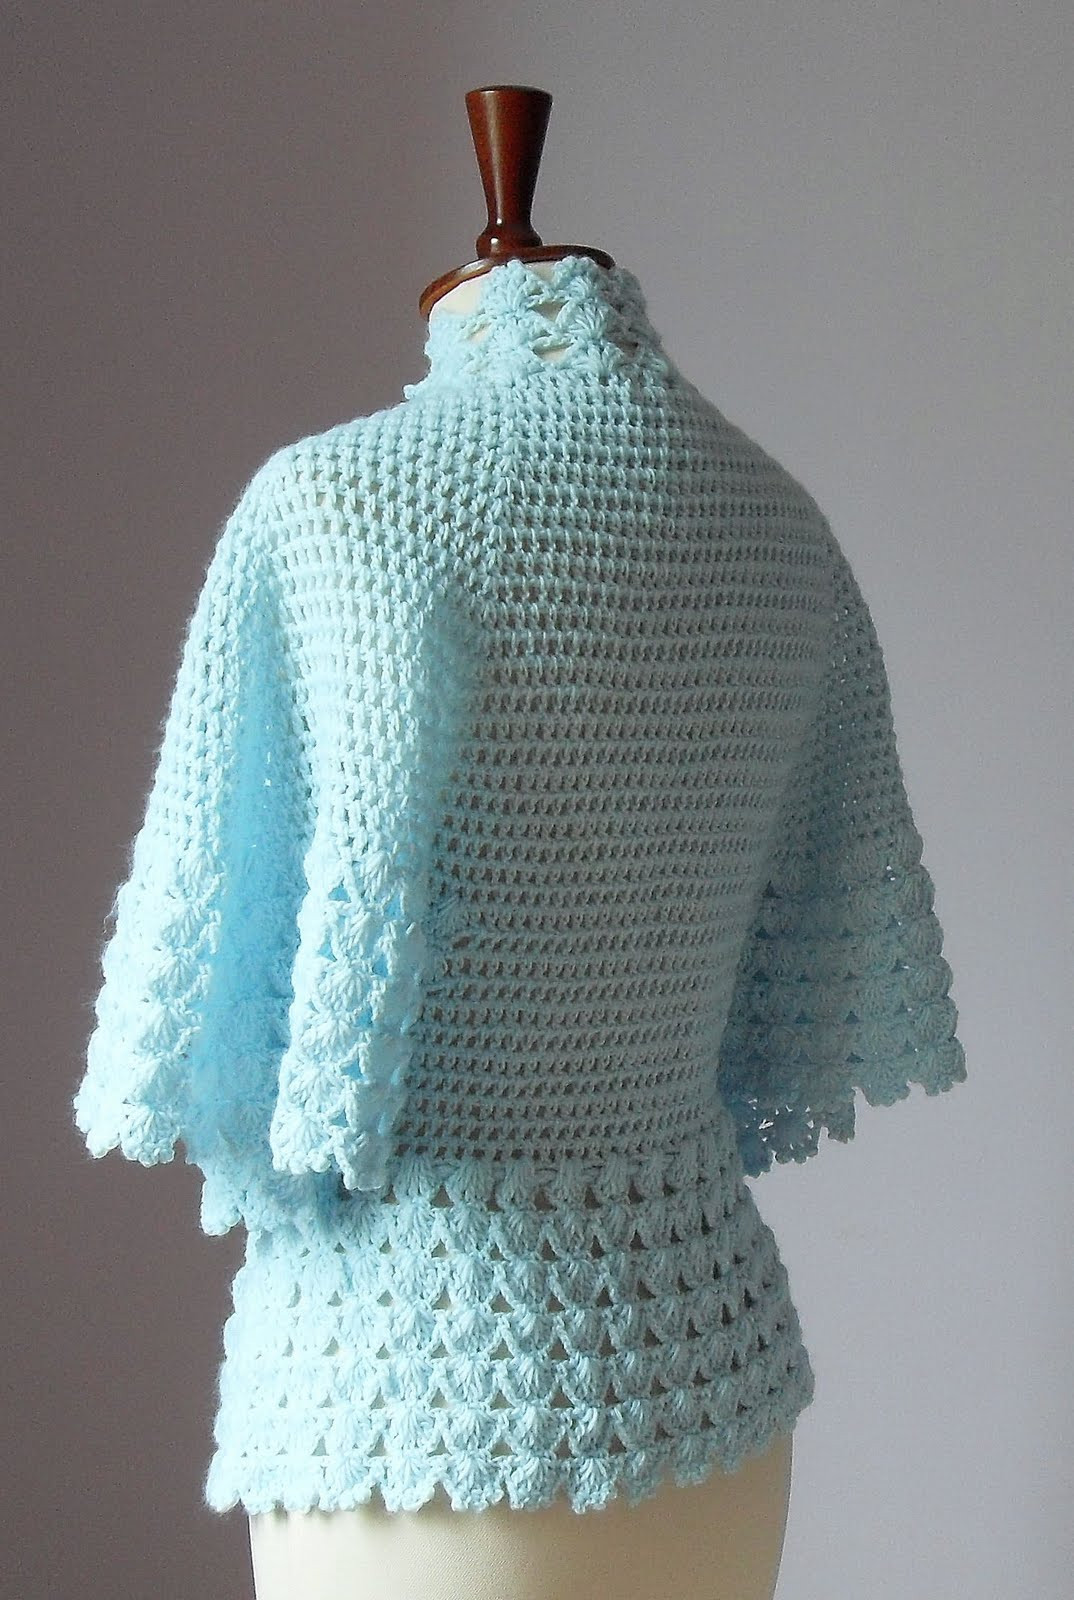 New Silvia66 Crocheted Bed Jacket or Light Cardigan Bed Jacket Pattern Of Luxury 42 Ideas Bed Jacket Pattern